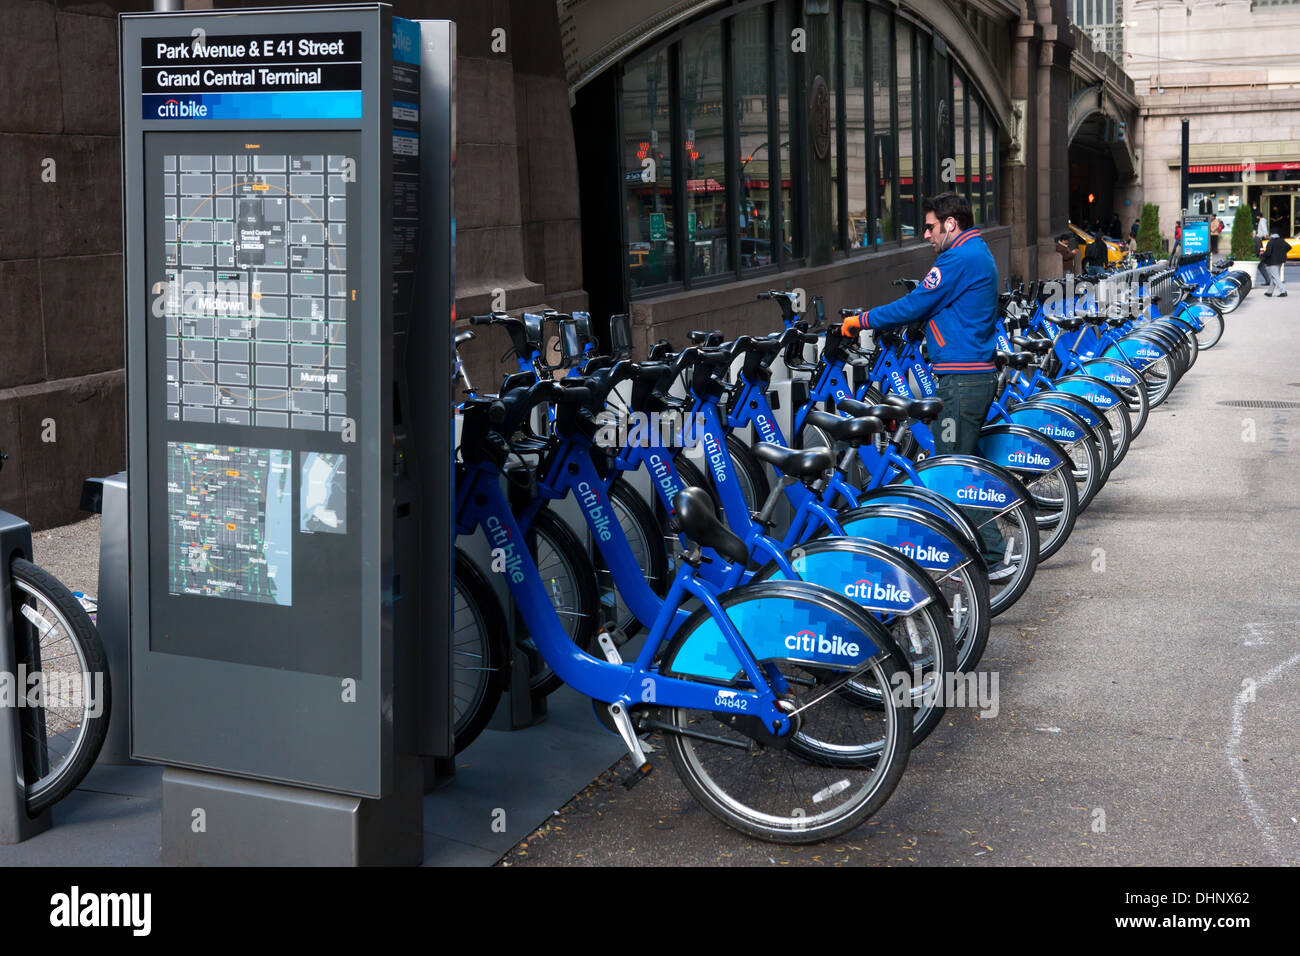 A man checks out a bike from a Citi Bike NYC bike sharing program docking station in Pershing Square in New York City. - Stock Image